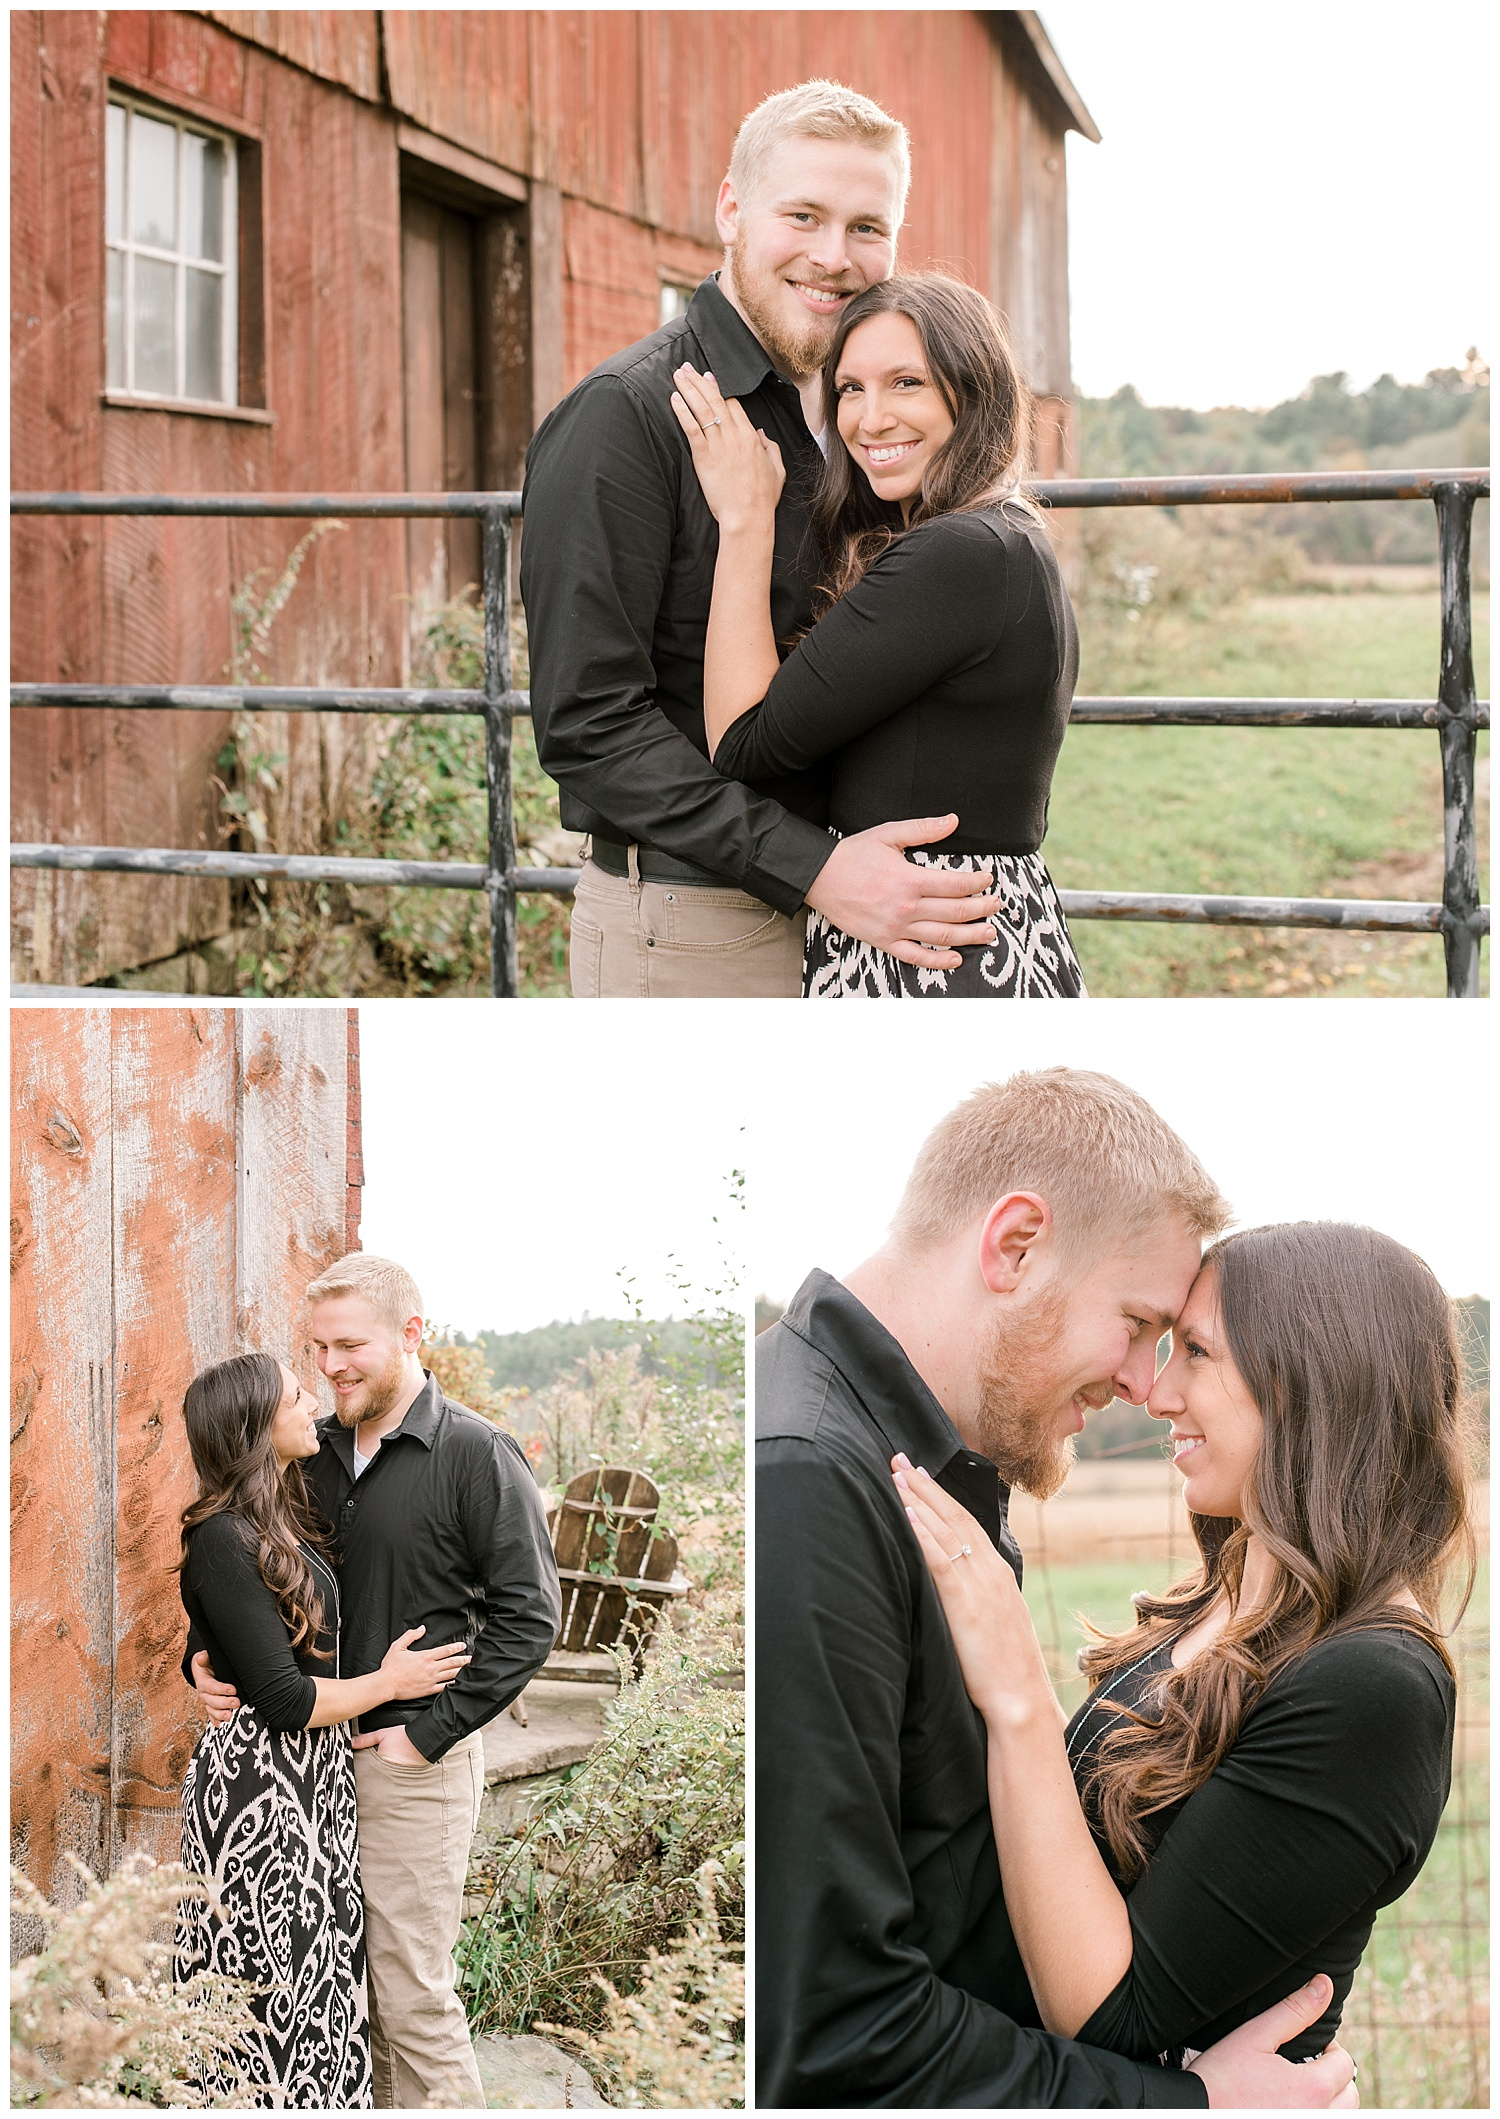 october18-connecticut-engagement-photography-rustic-farm-3.jpg